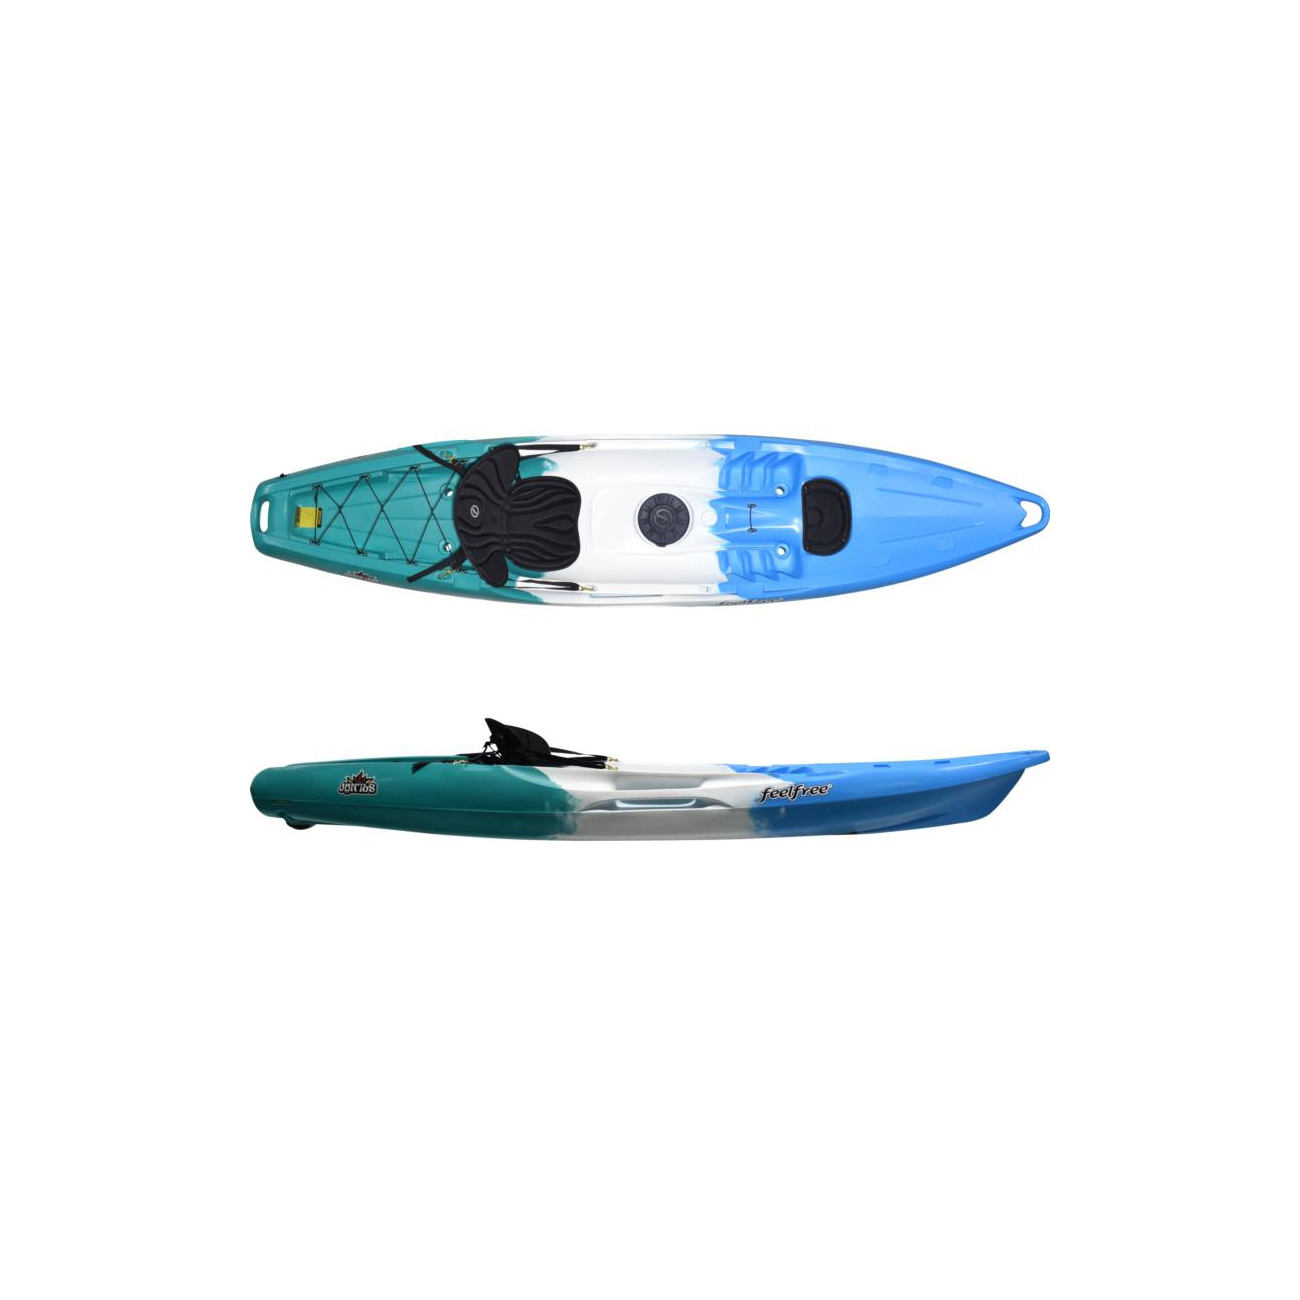 https://feelfreekayak.eu/609-small_default/juntos-ice-cool-light-blue-white-teal.jpg